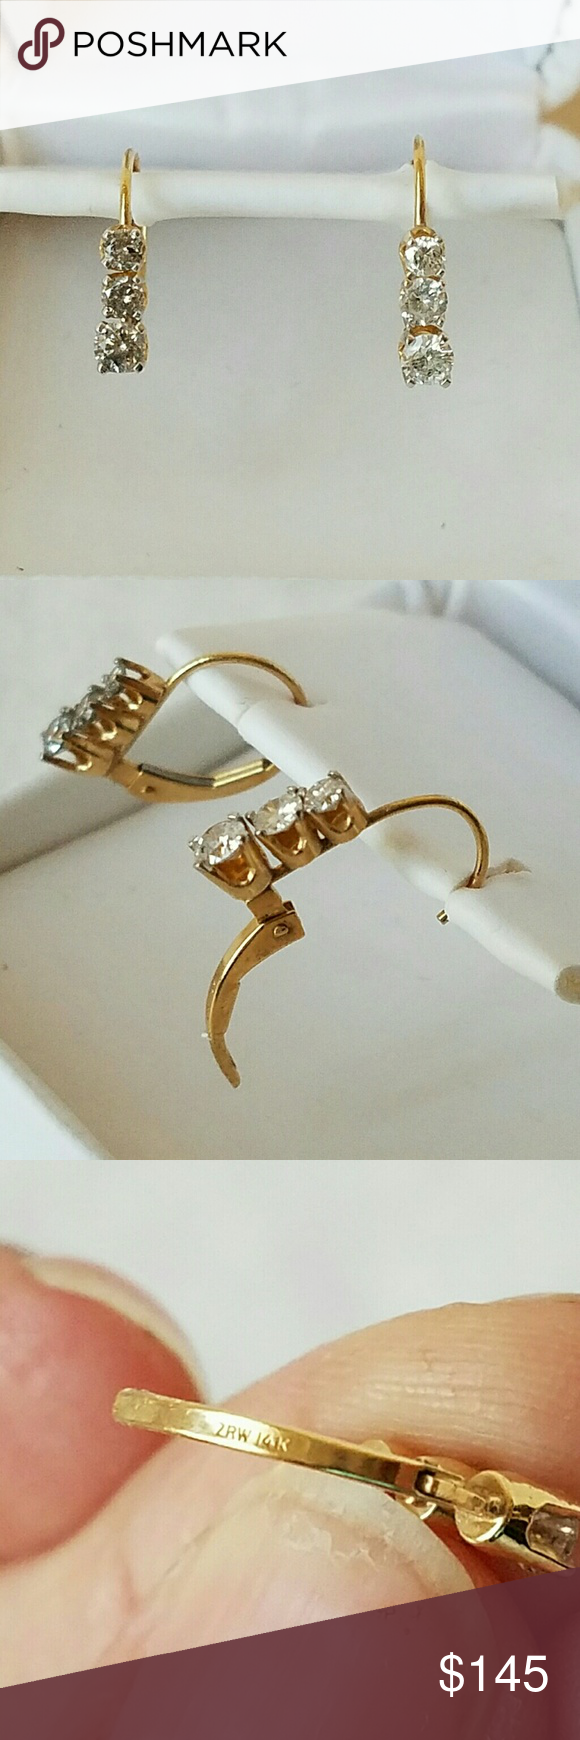 14k Diamond Past Present Future Trilogy Earrings Solid Yellow Gold With 6 Genuine Natural Diamonds 3 On Each Ear Graduate From Rox 2 2mm